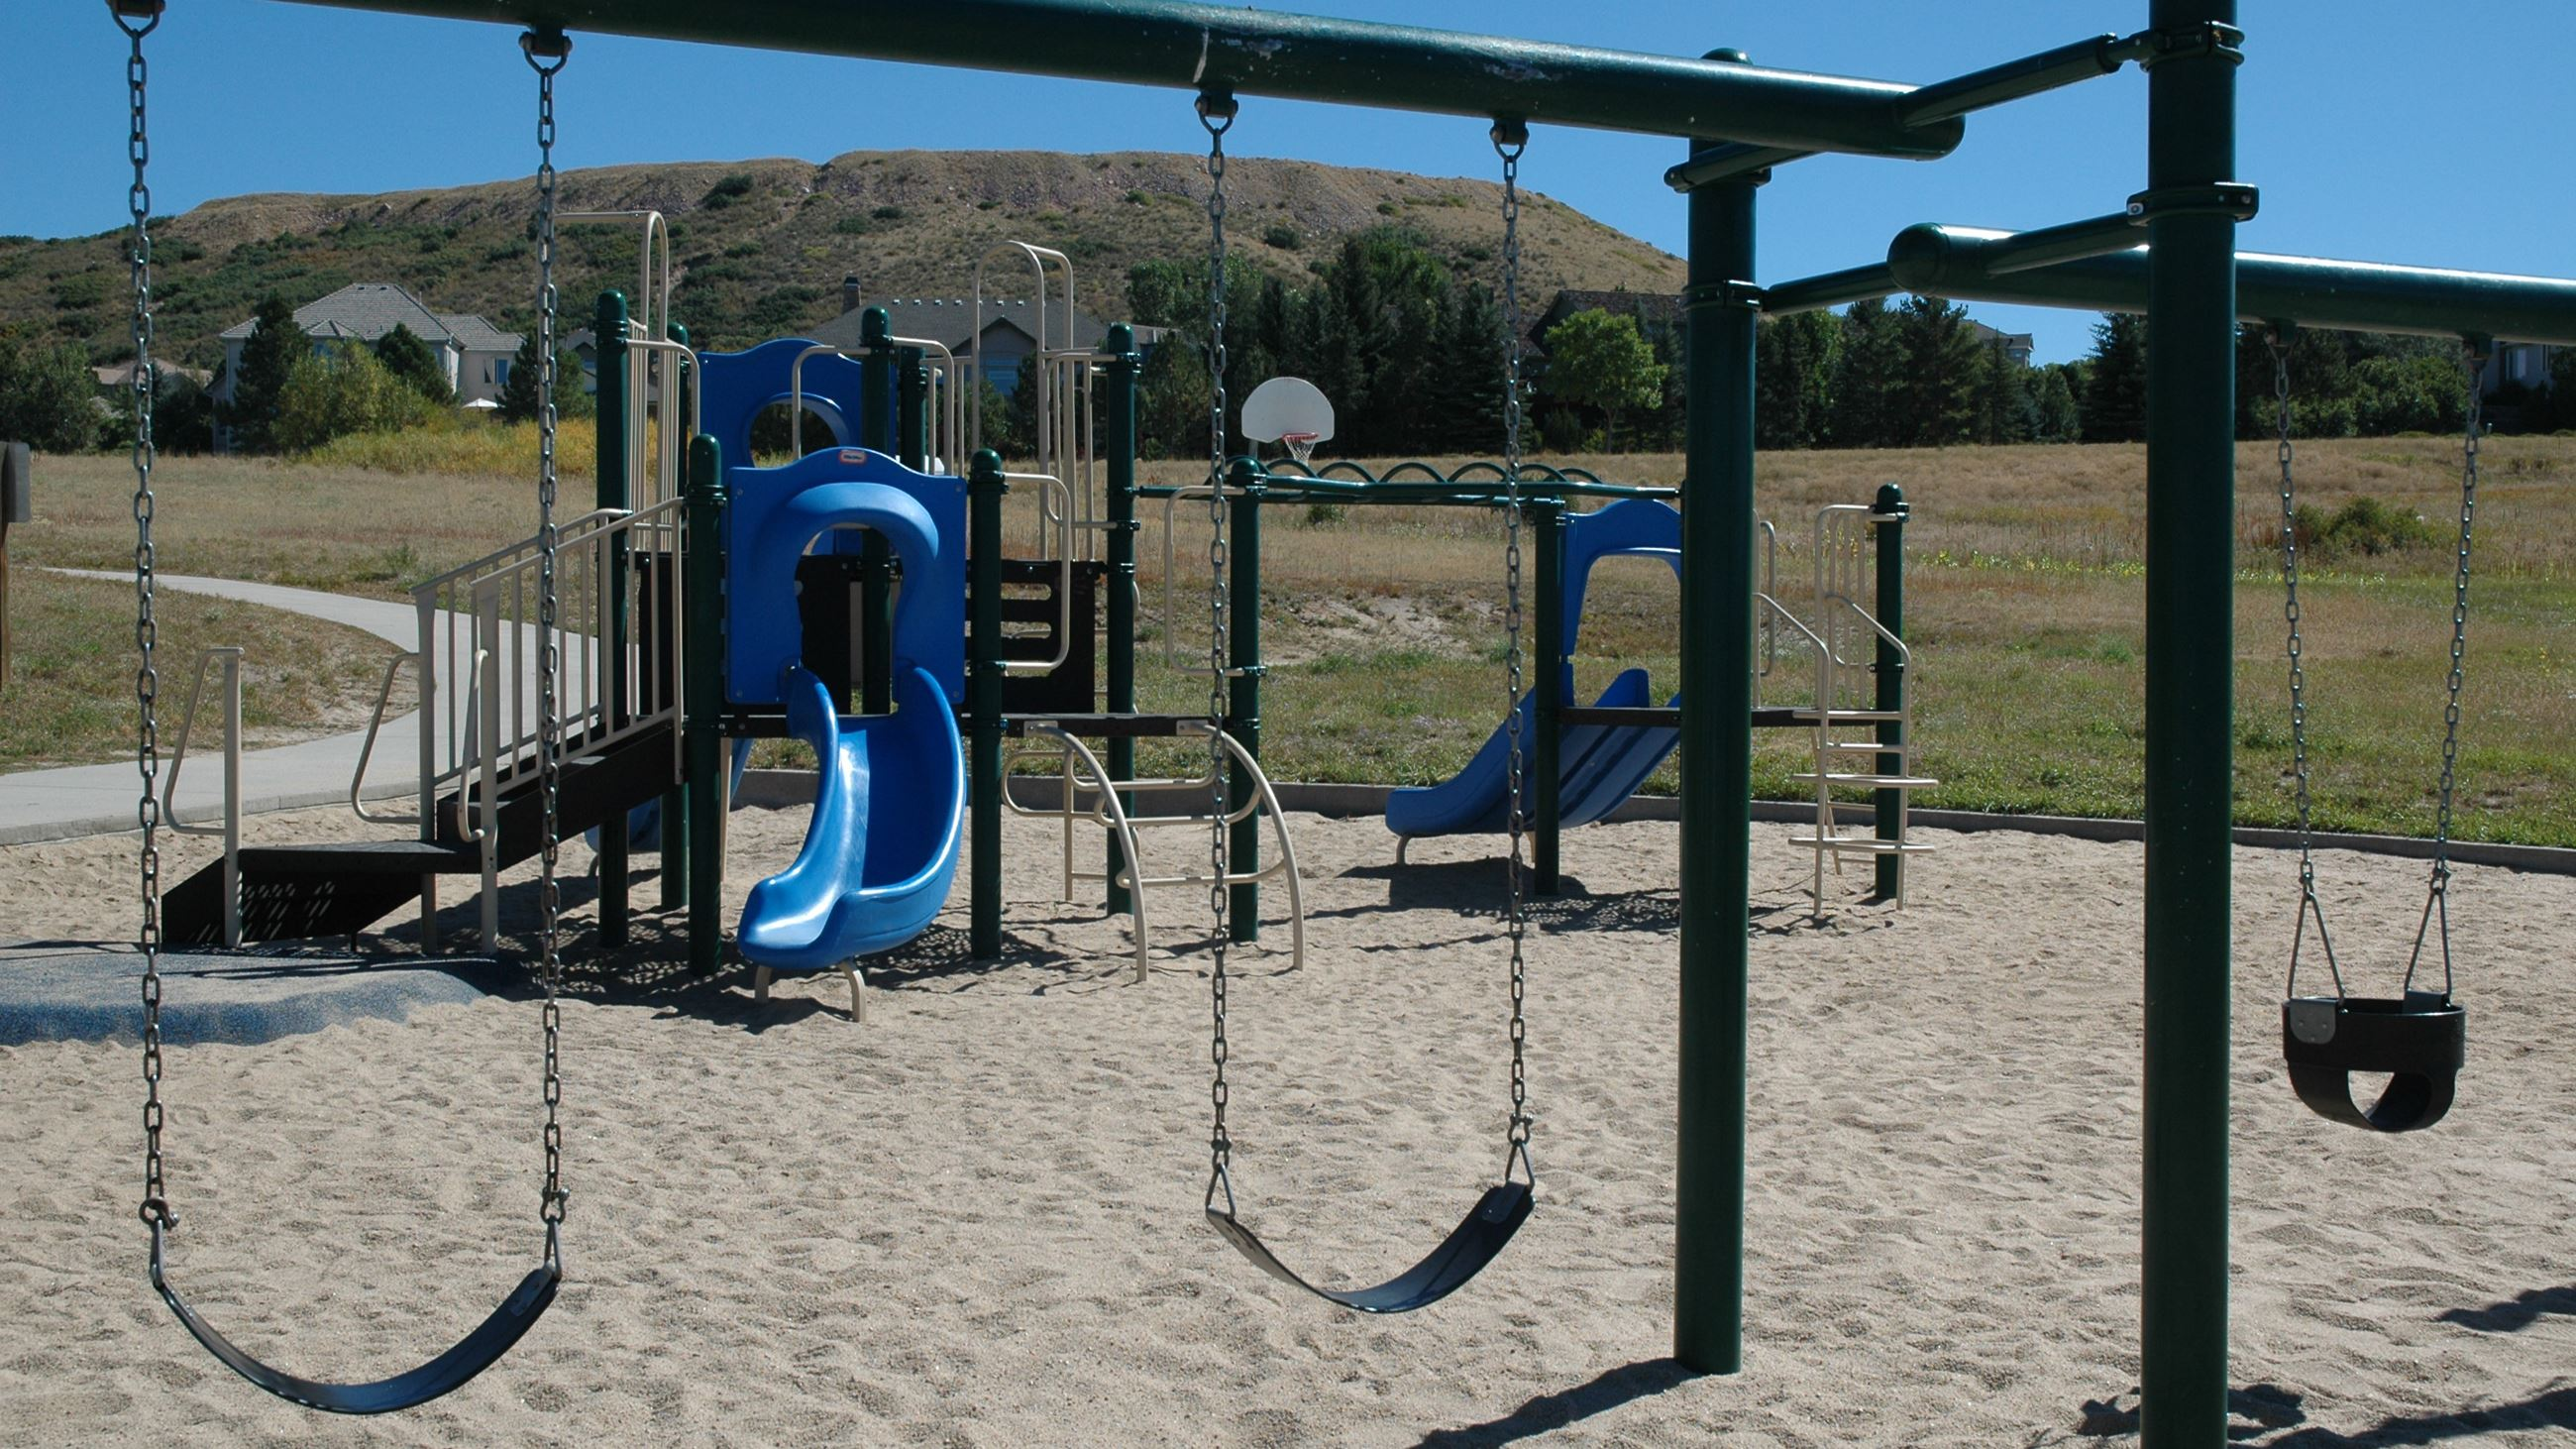 Swings at Plum Creek Park